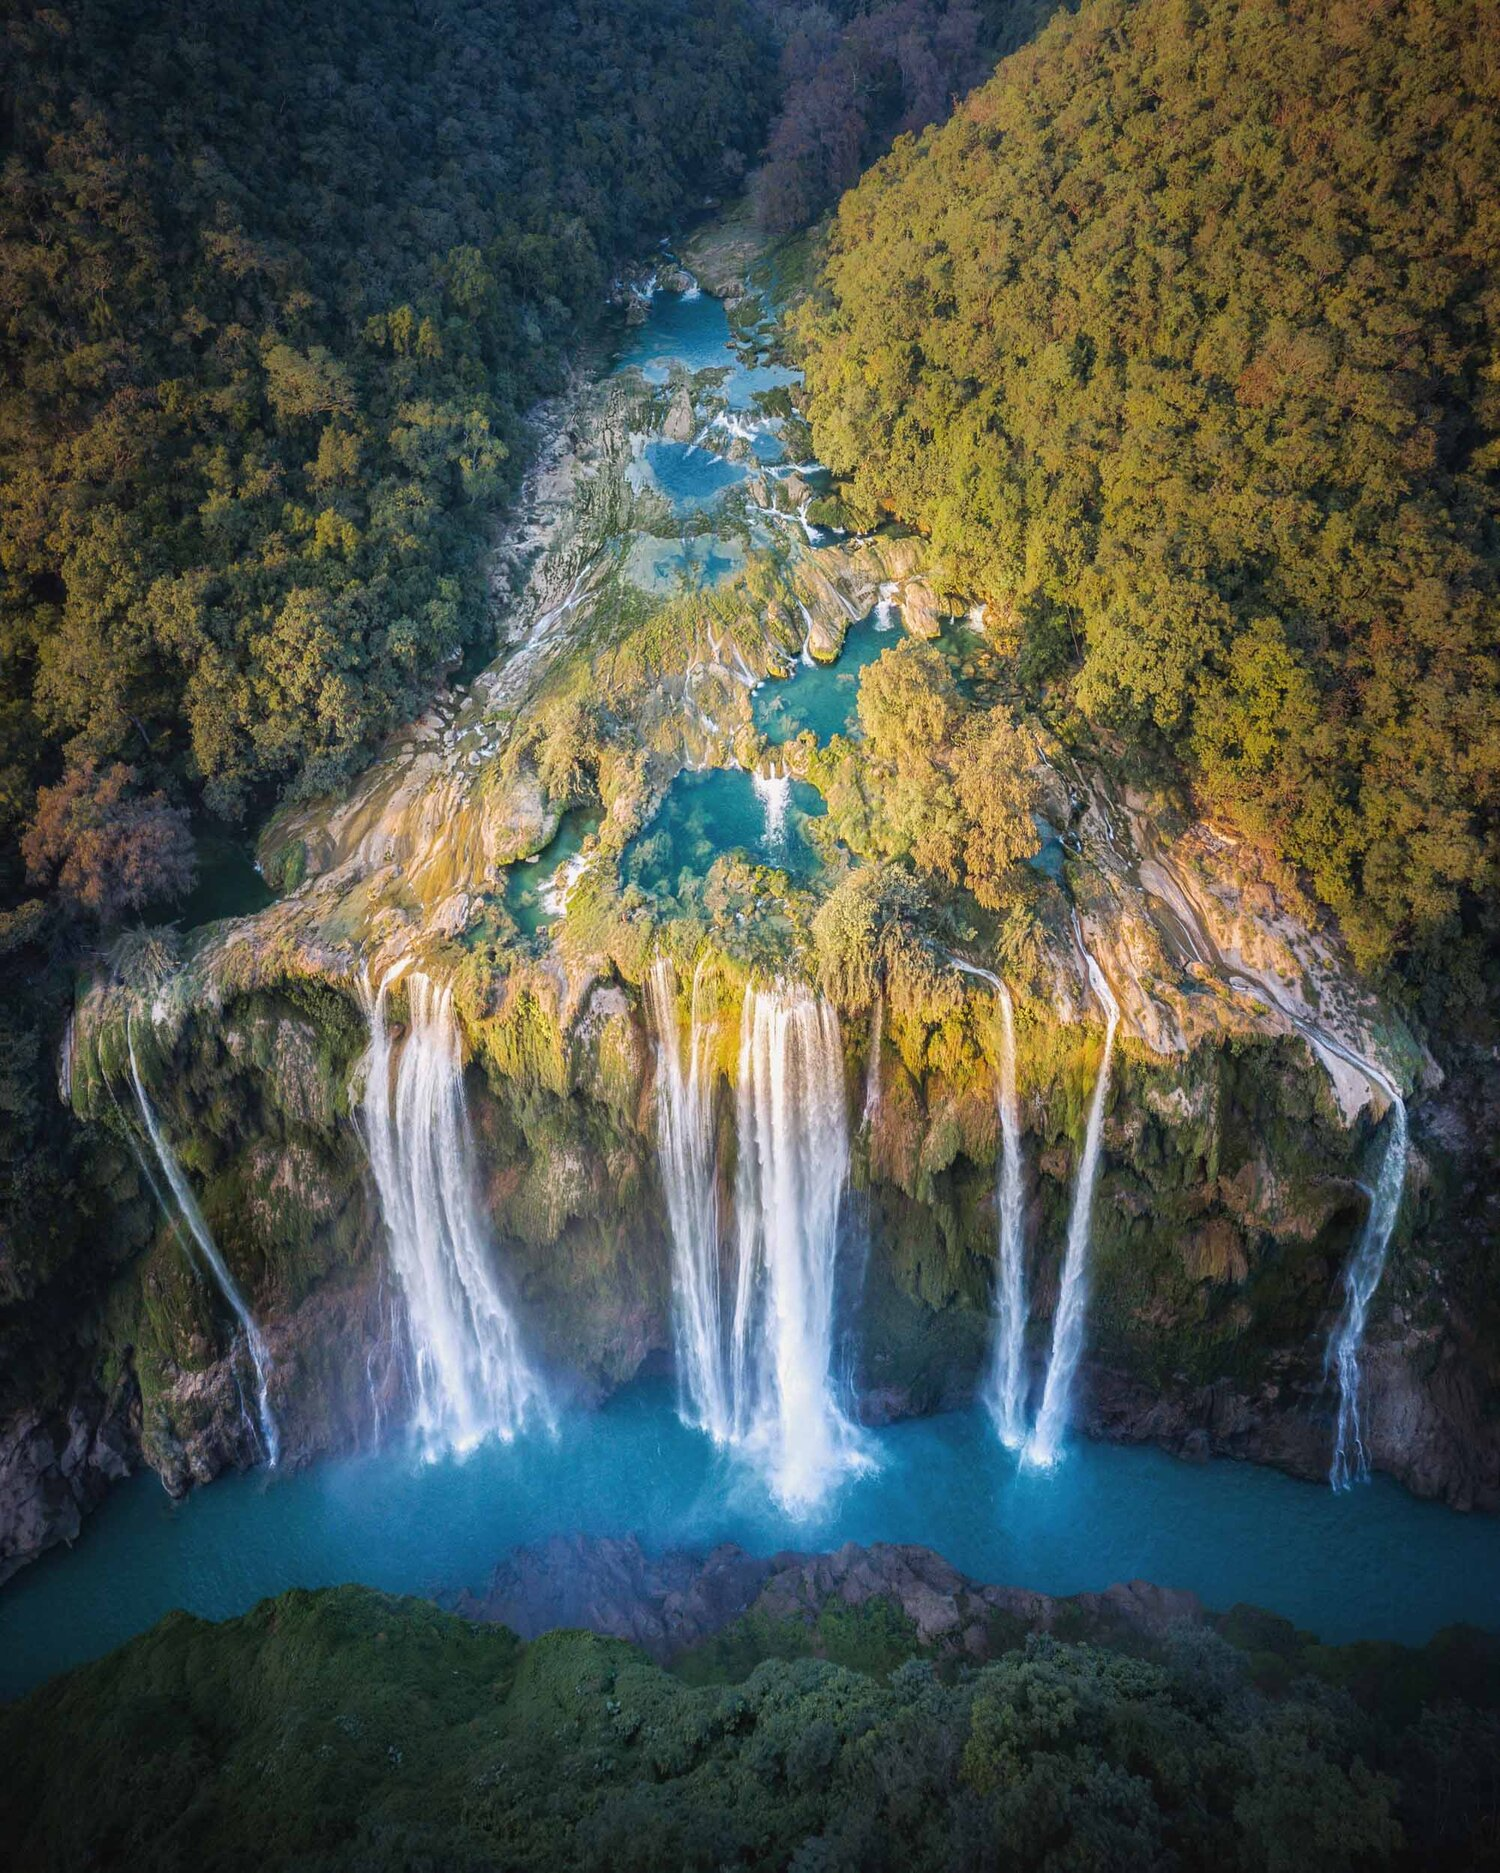 These Waterfalls In La Huasteca Potosina Mexico Will Blow Your Mind Jess Wandering